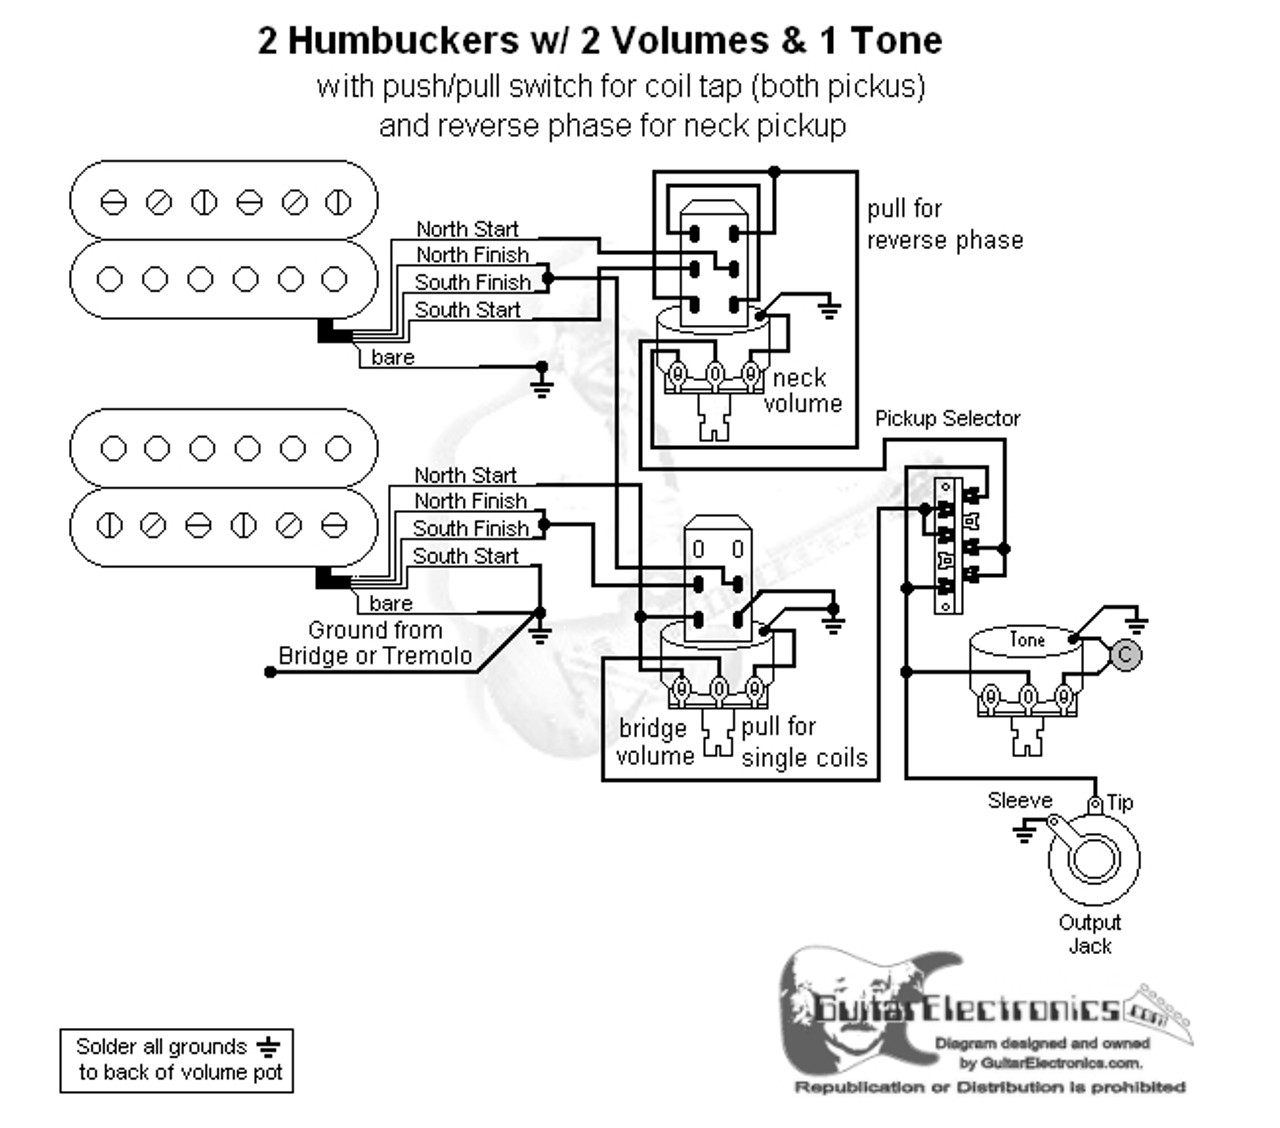 2 hbs 3 way lever 2 vol 1 tone coil tap \u0026 reverse phaseHumbuckers 3way Toggle Switch 1 Volume 1 Tone Coil Tap Reverse #6